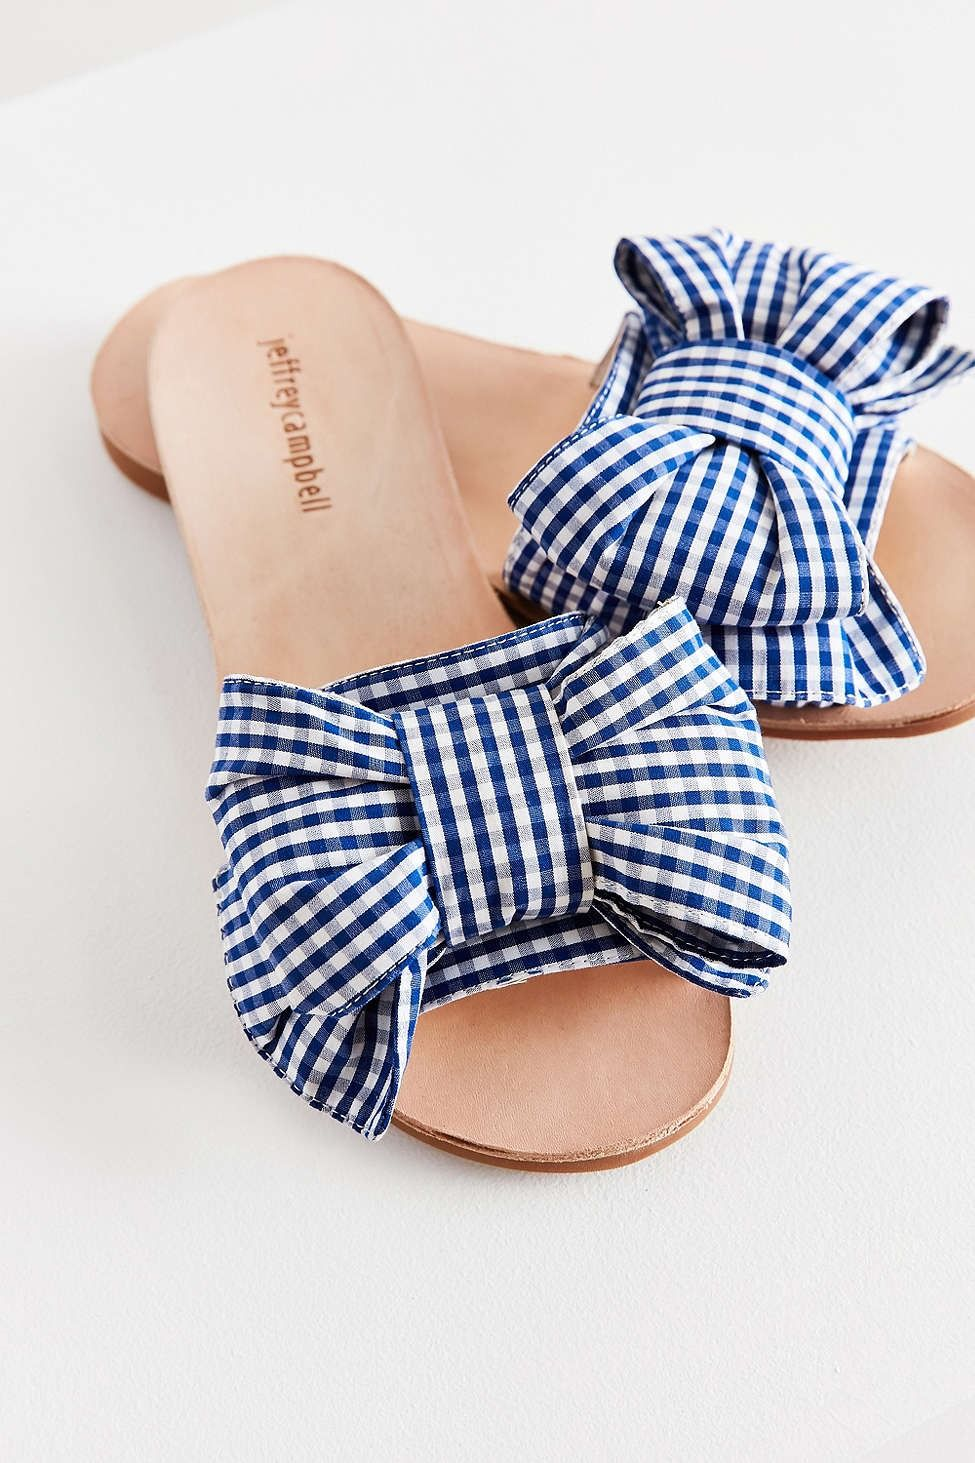 b4c88defa7f1b Jeffrey Campbell For UO Regalo Slide - Urban Outfitters